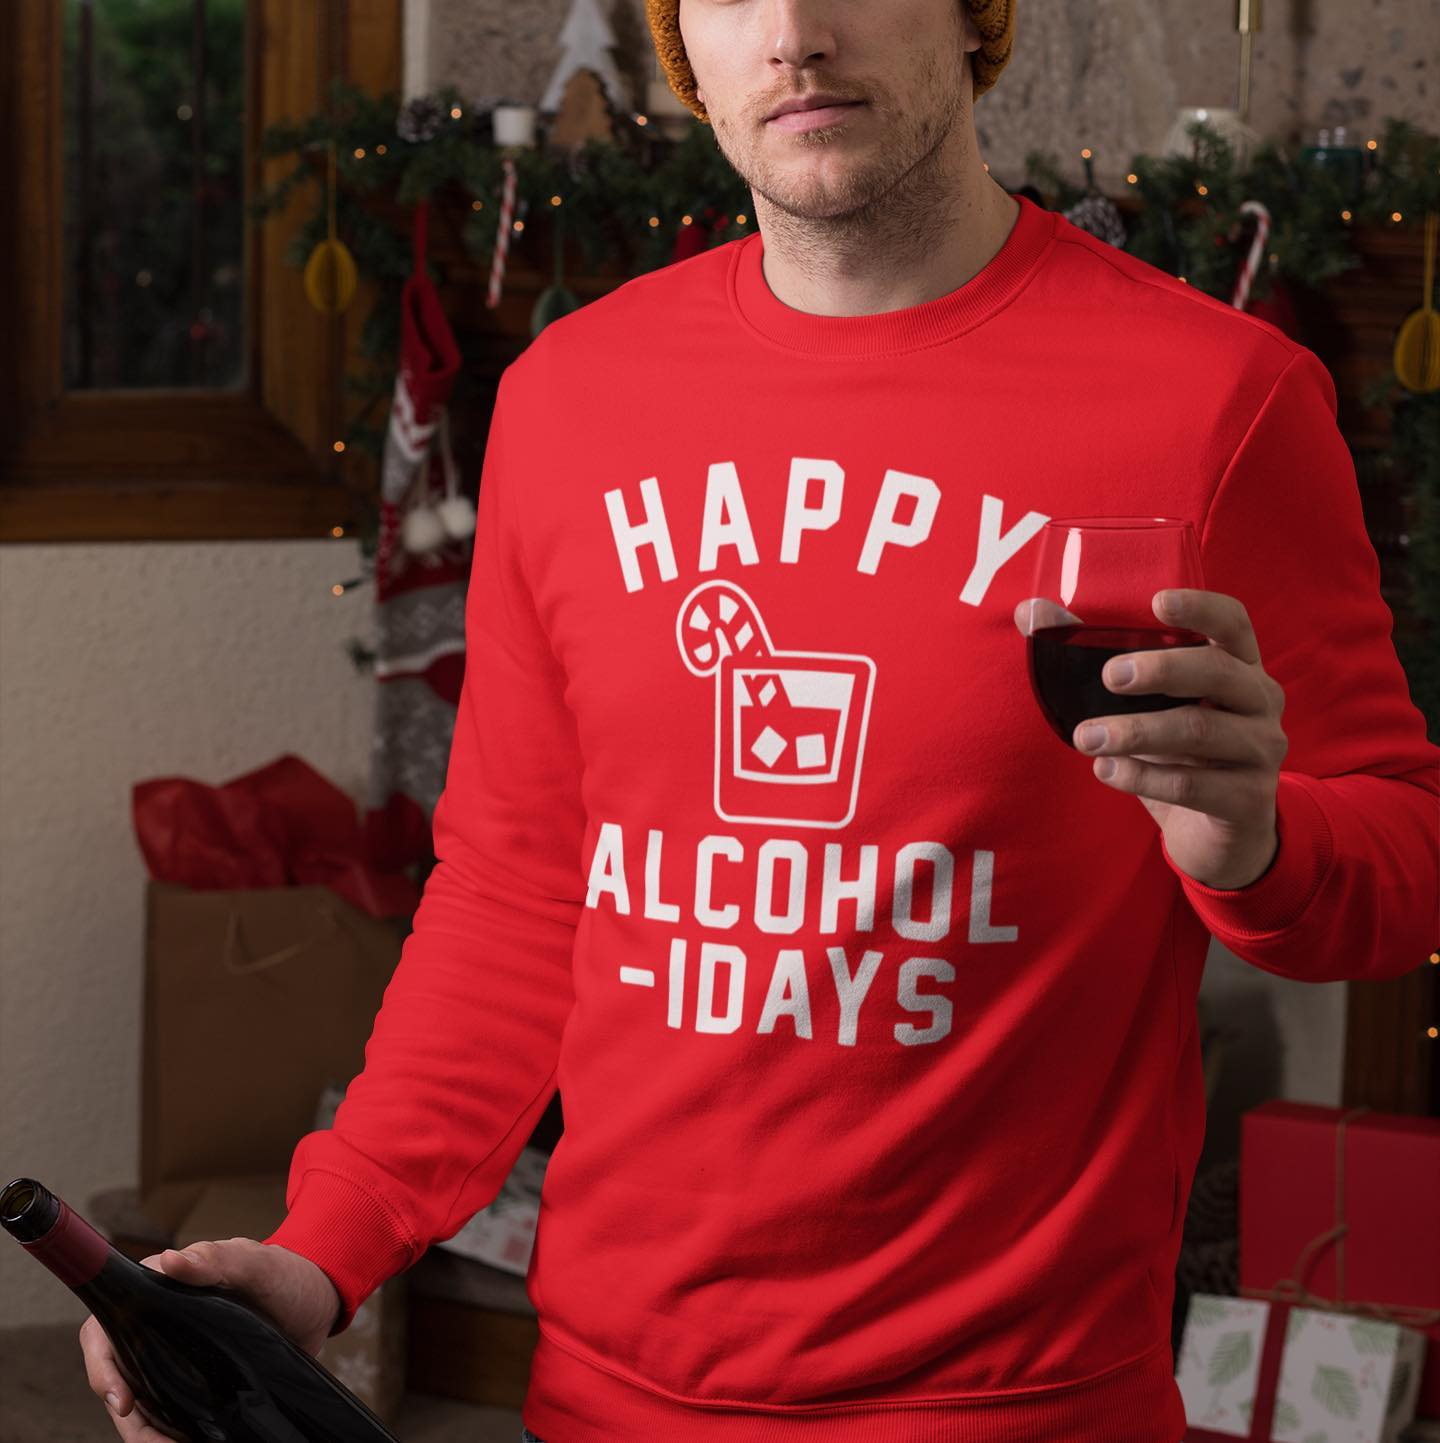 Happy Alcohol-idays!🙌 The deadline to...